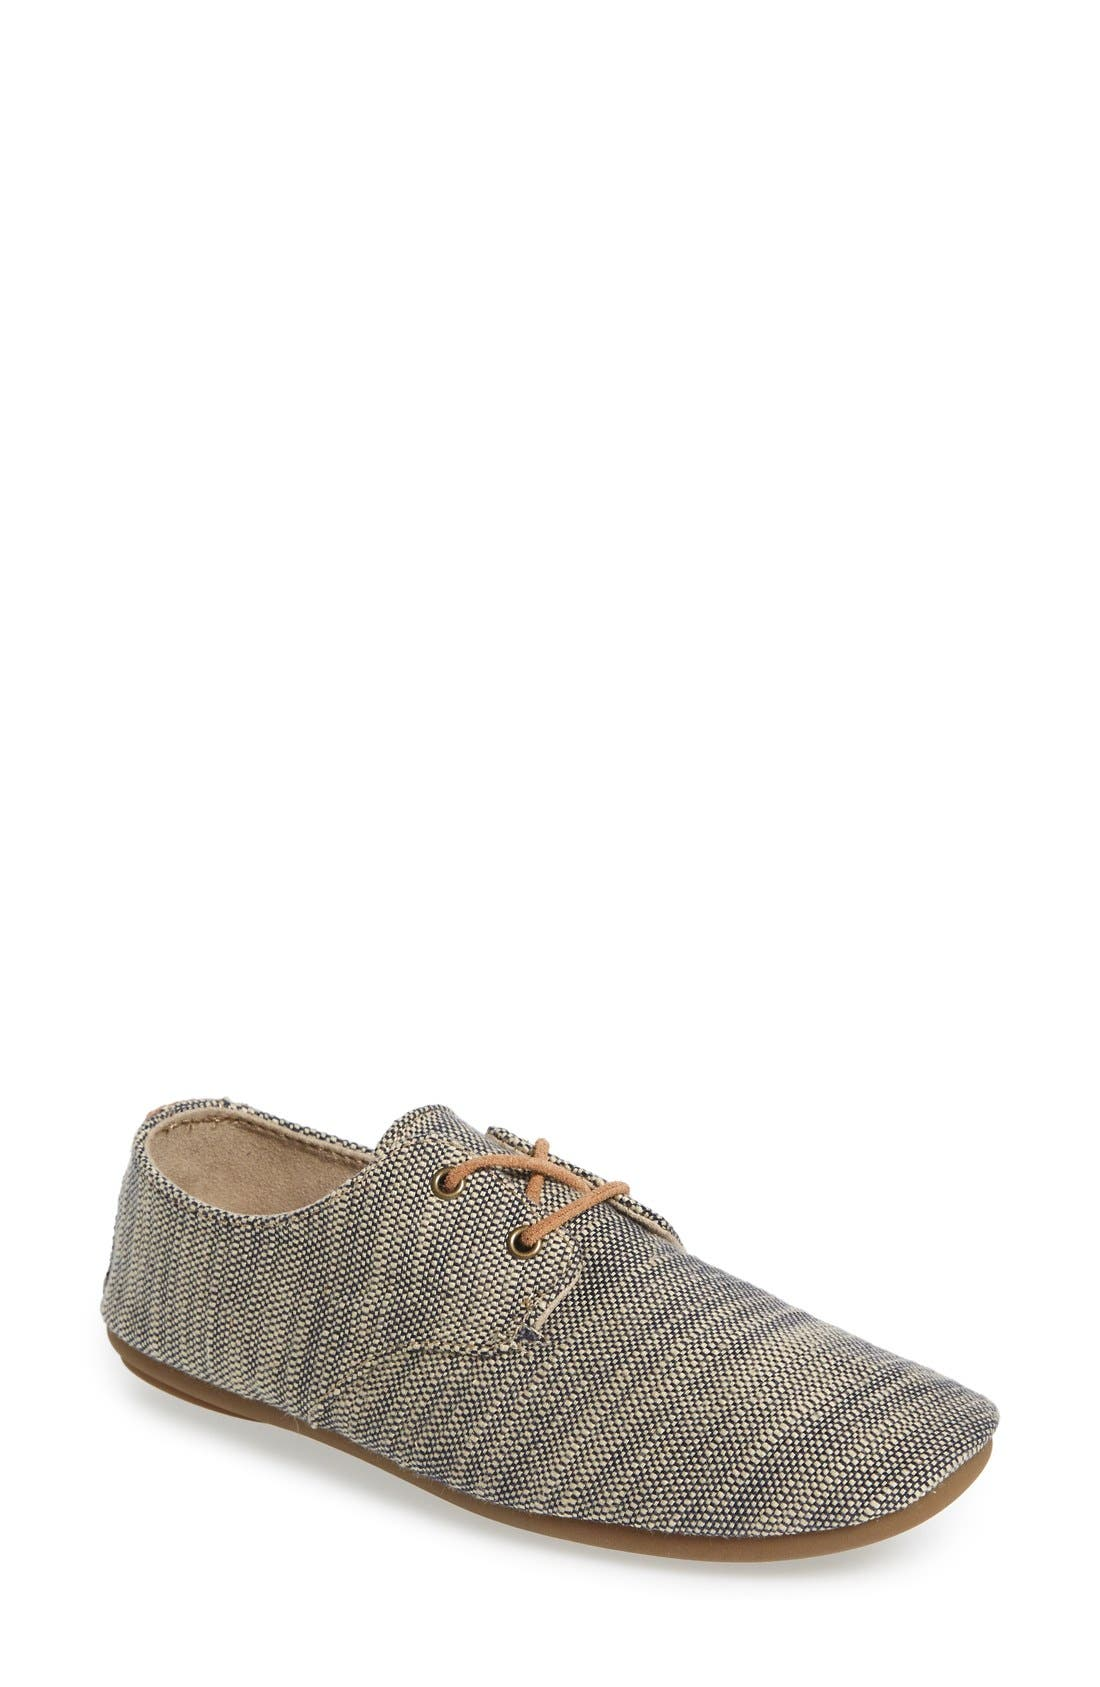 'Bianca' Oxford Flat,                             Main thumbnail 1, color,                             Slate